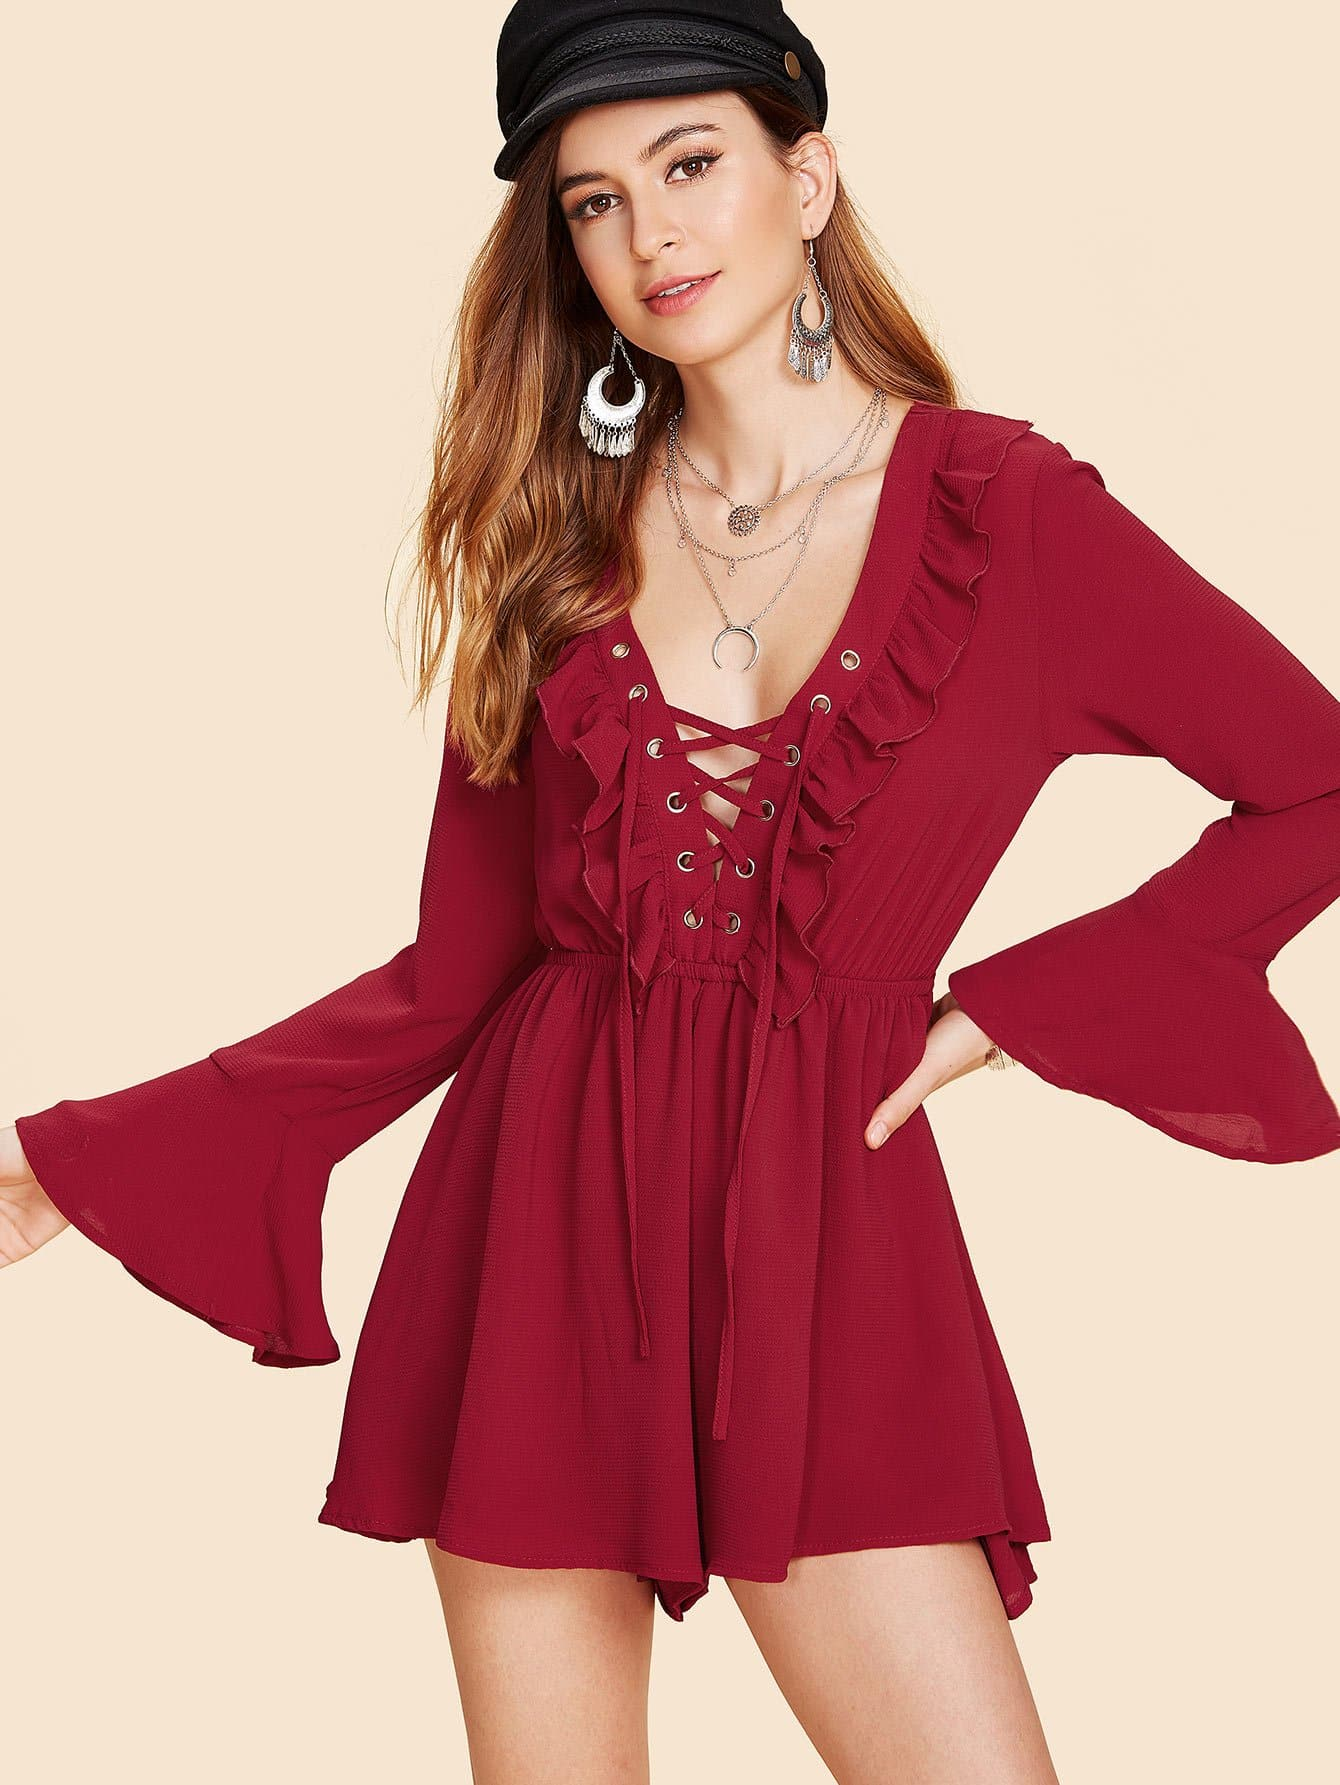 Plunge Lace Up Ruffle Trim Romper ruffle trim striped romper